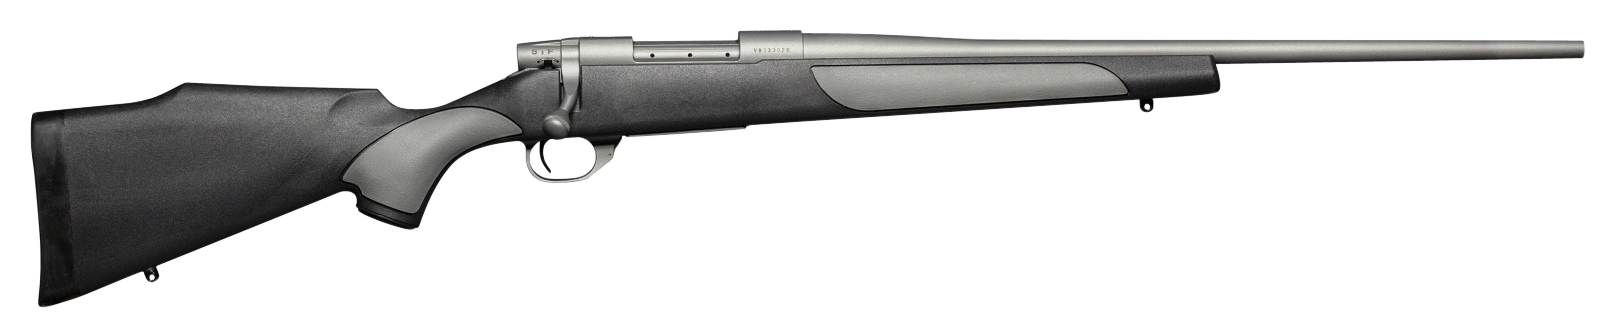 Weatherby Vanguard Weatherguard 7mm-08 Rem 24